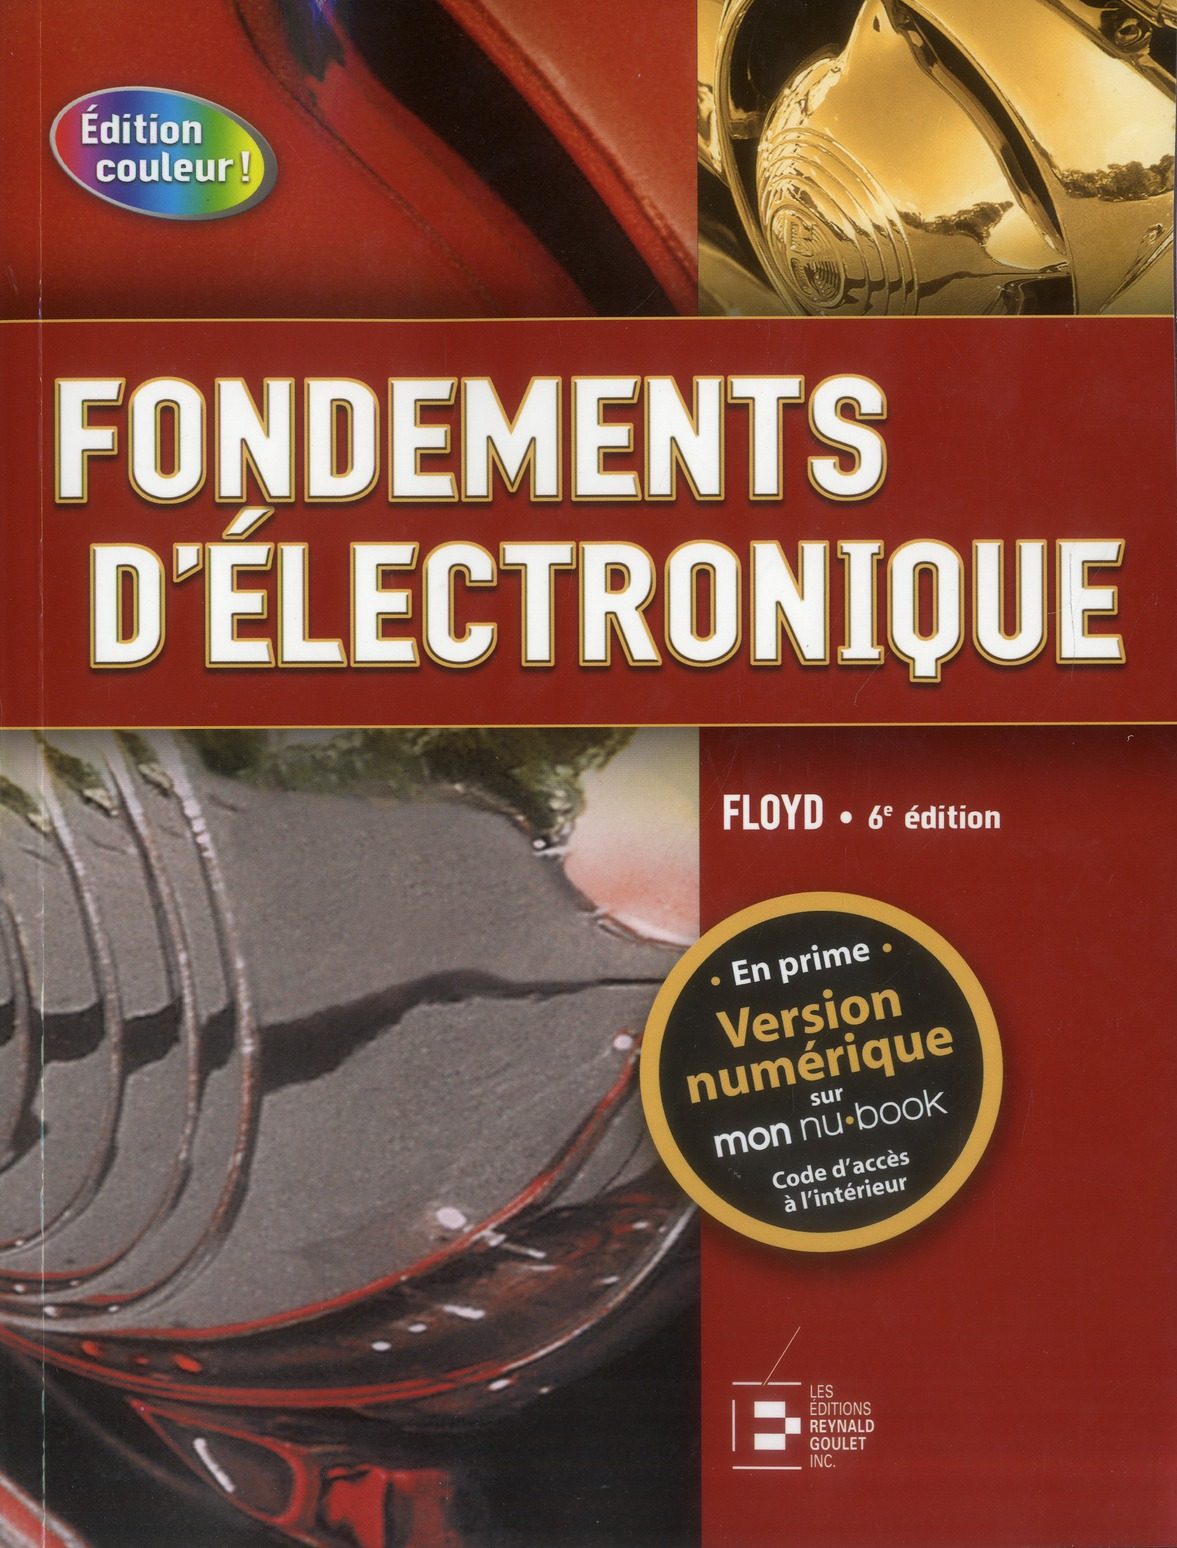 Fondements D'Electronique ; Circuits C.C. ; Circuits C.A. ; Composants Et Applications (6e Edition)